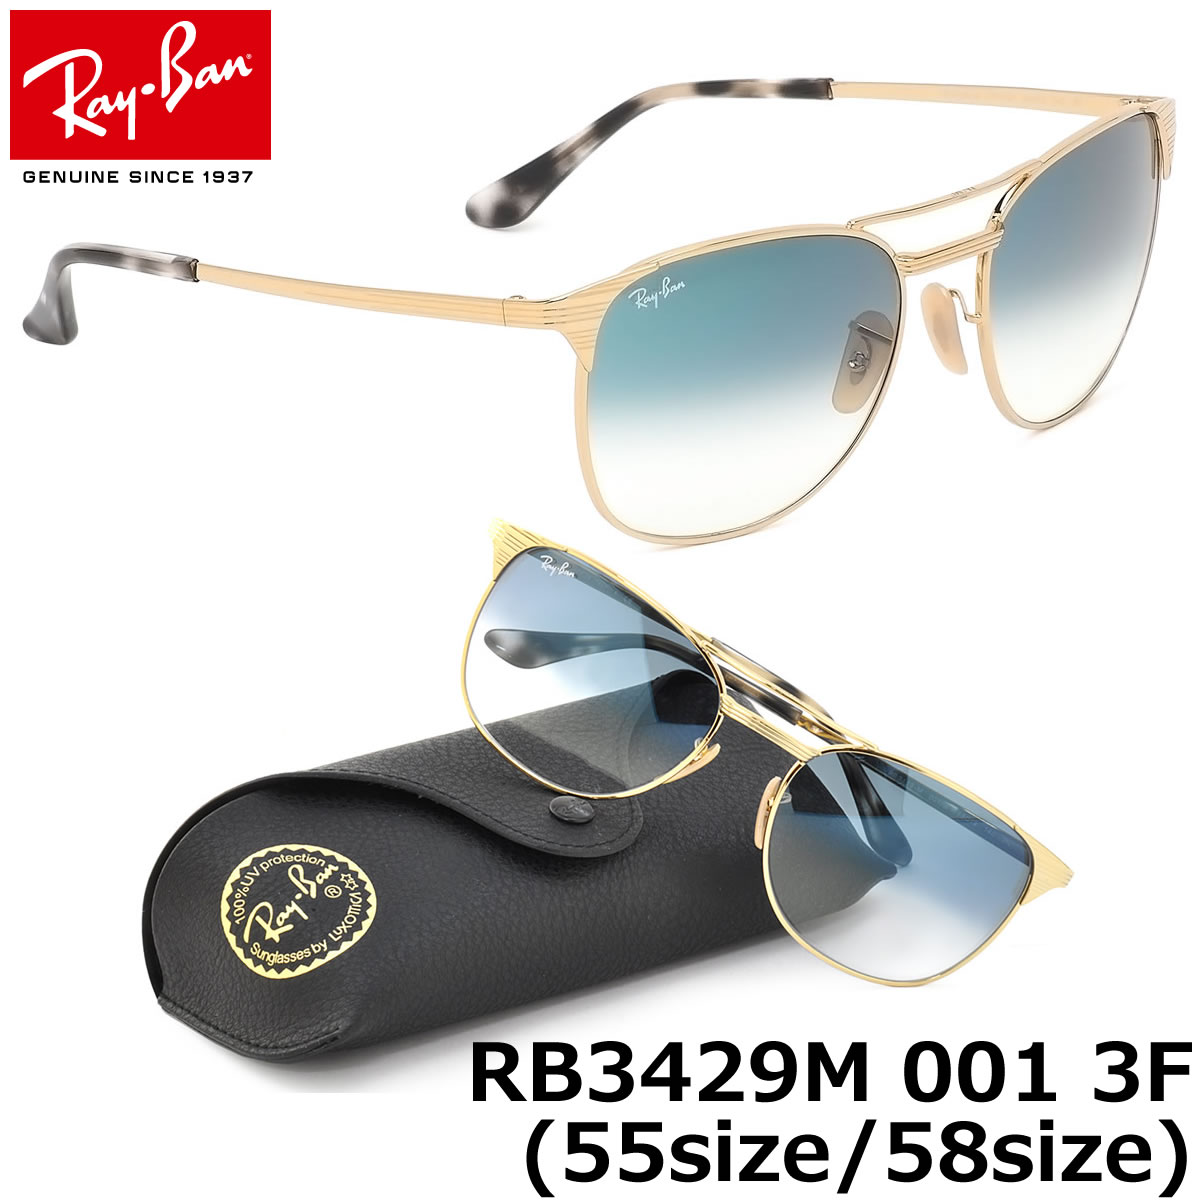 a30b98a007 Ray-Ban Sunglasses RB3429M 001 3F multiple sizes available SIGNET GENUINE  NEW rayban ray ban